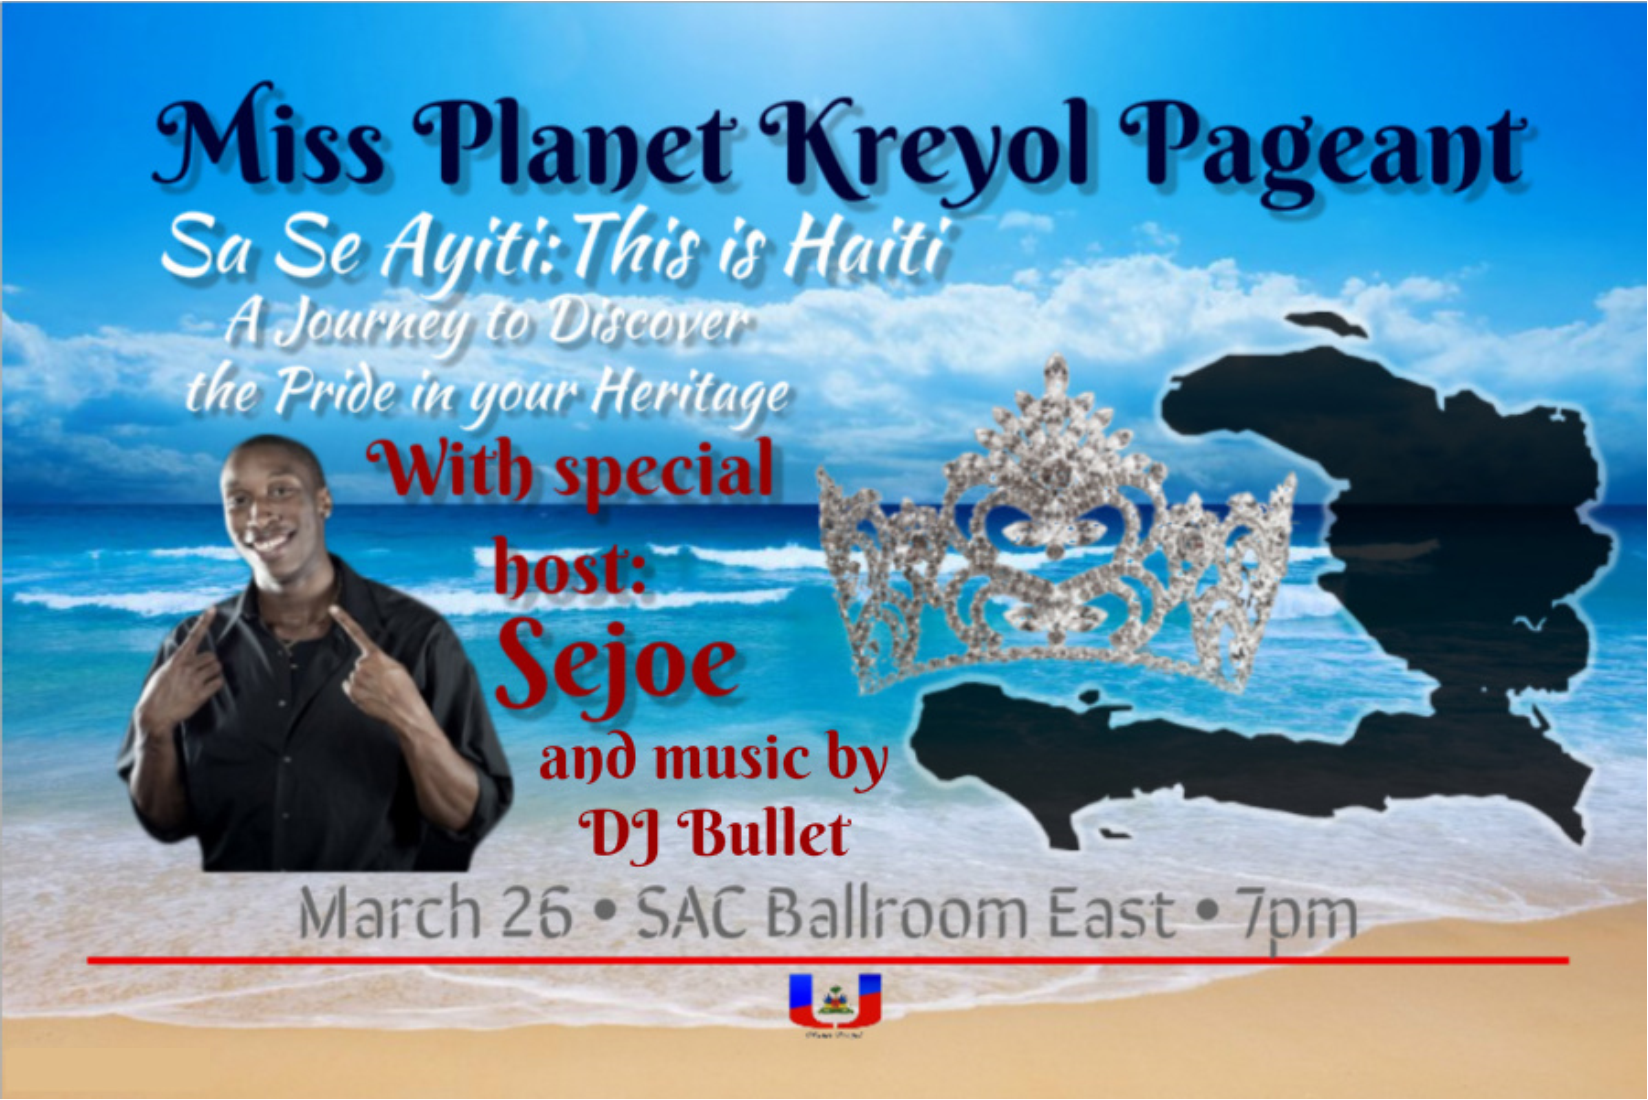 hcw pageant flyer new